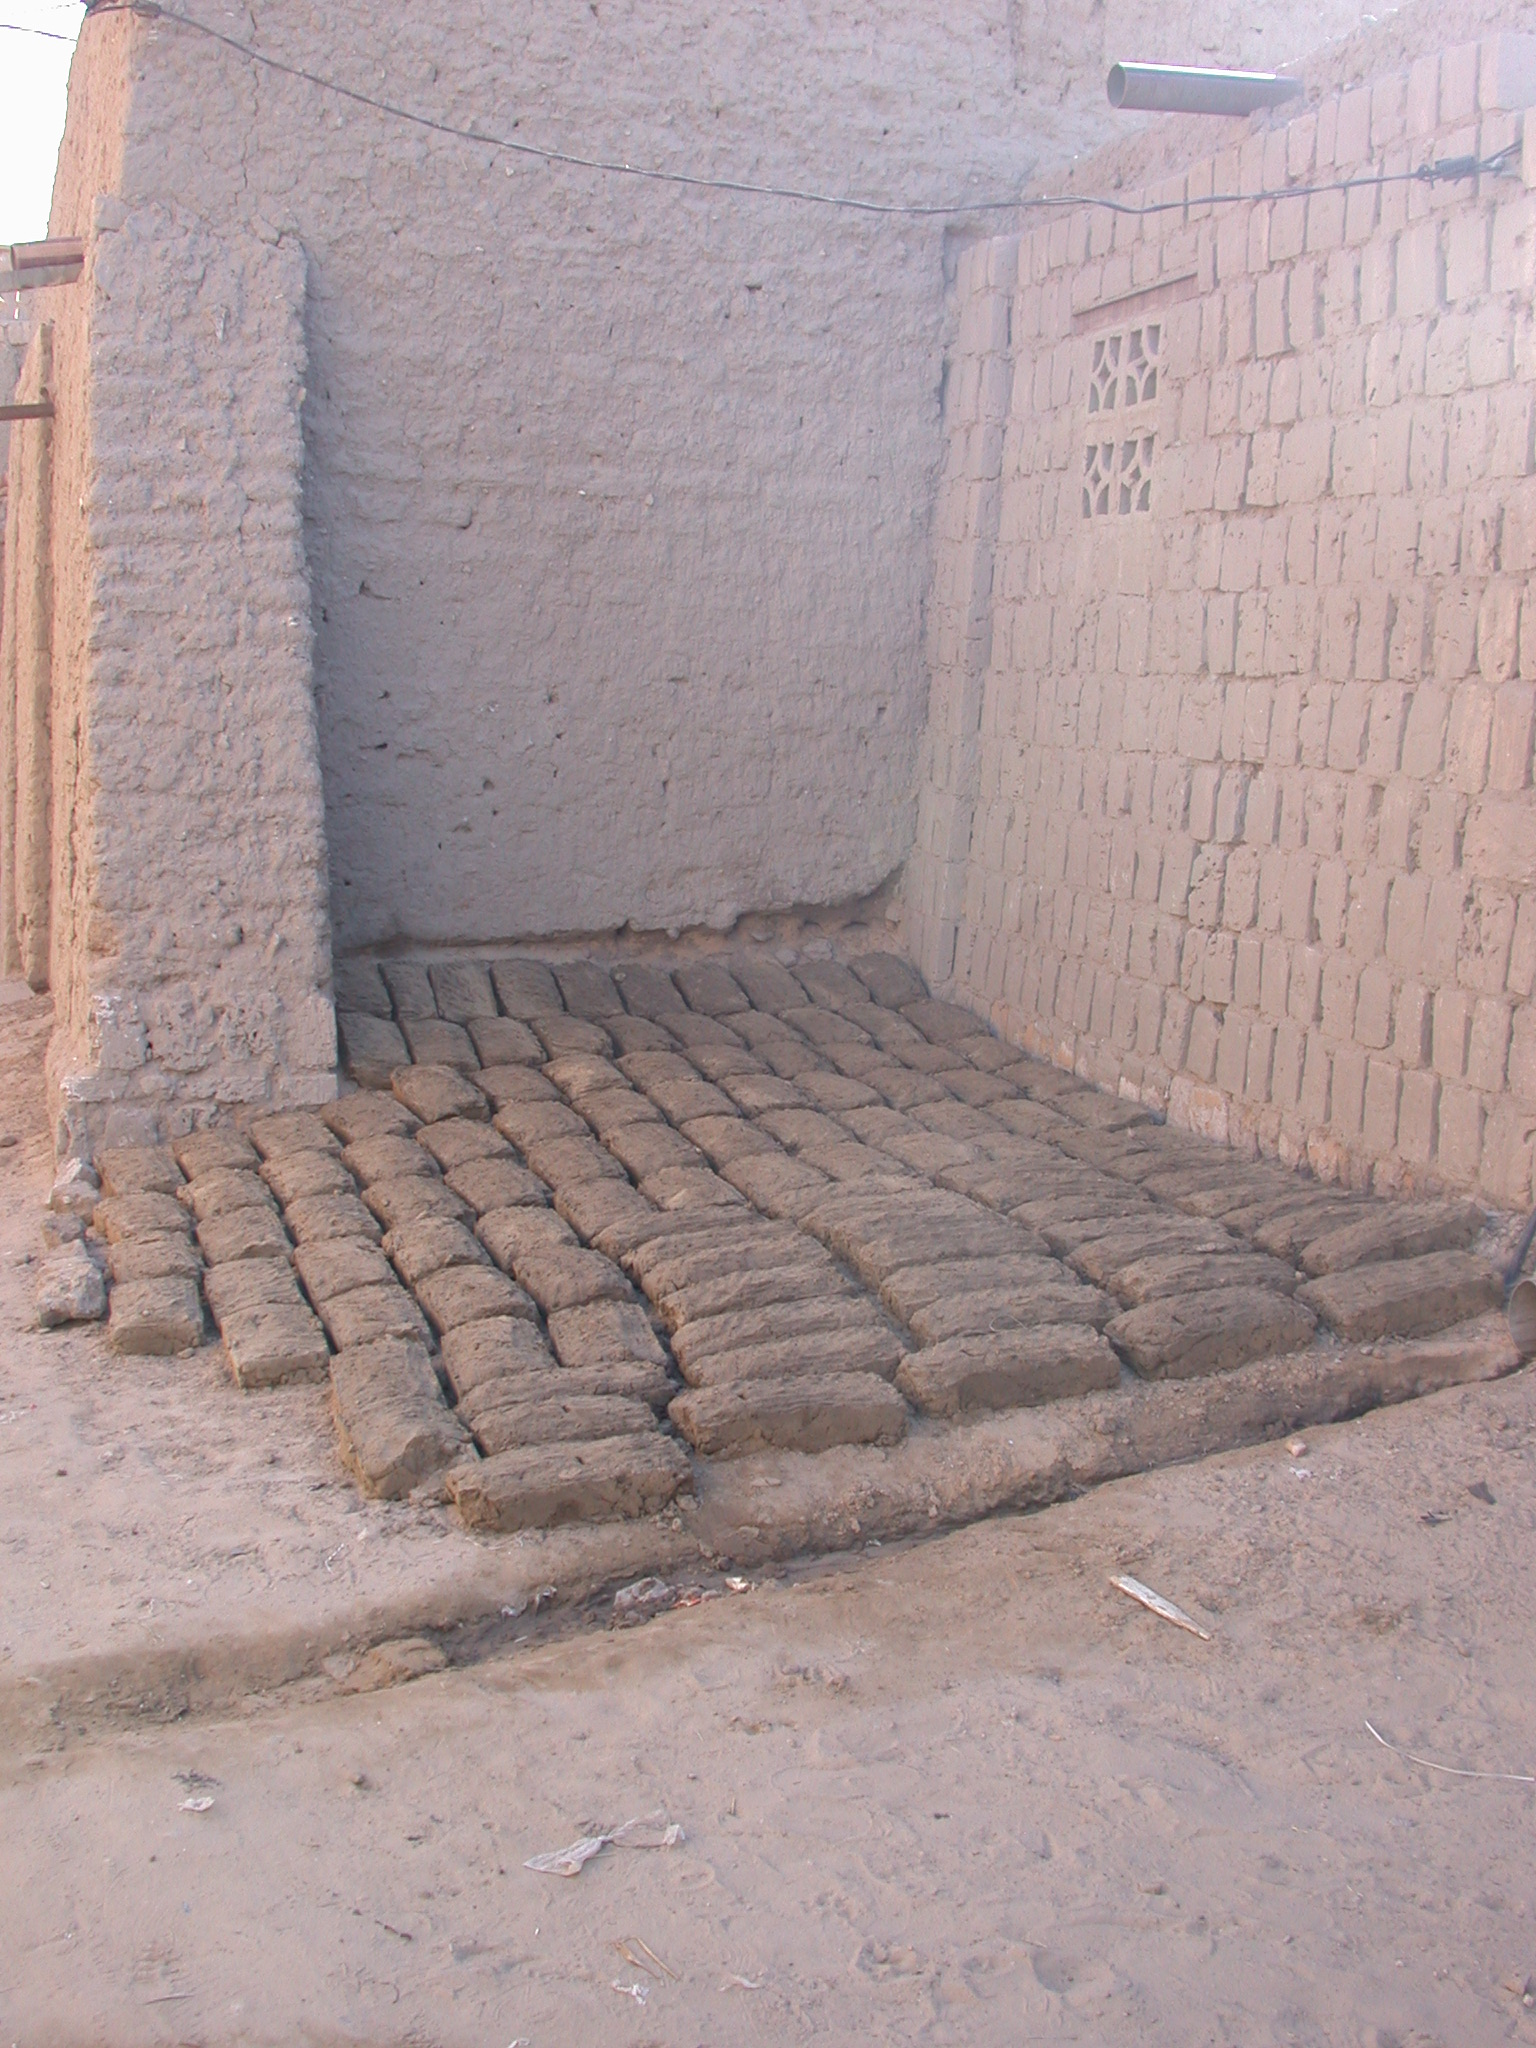 Drying Mud Bricks, Timbuktu, Mali